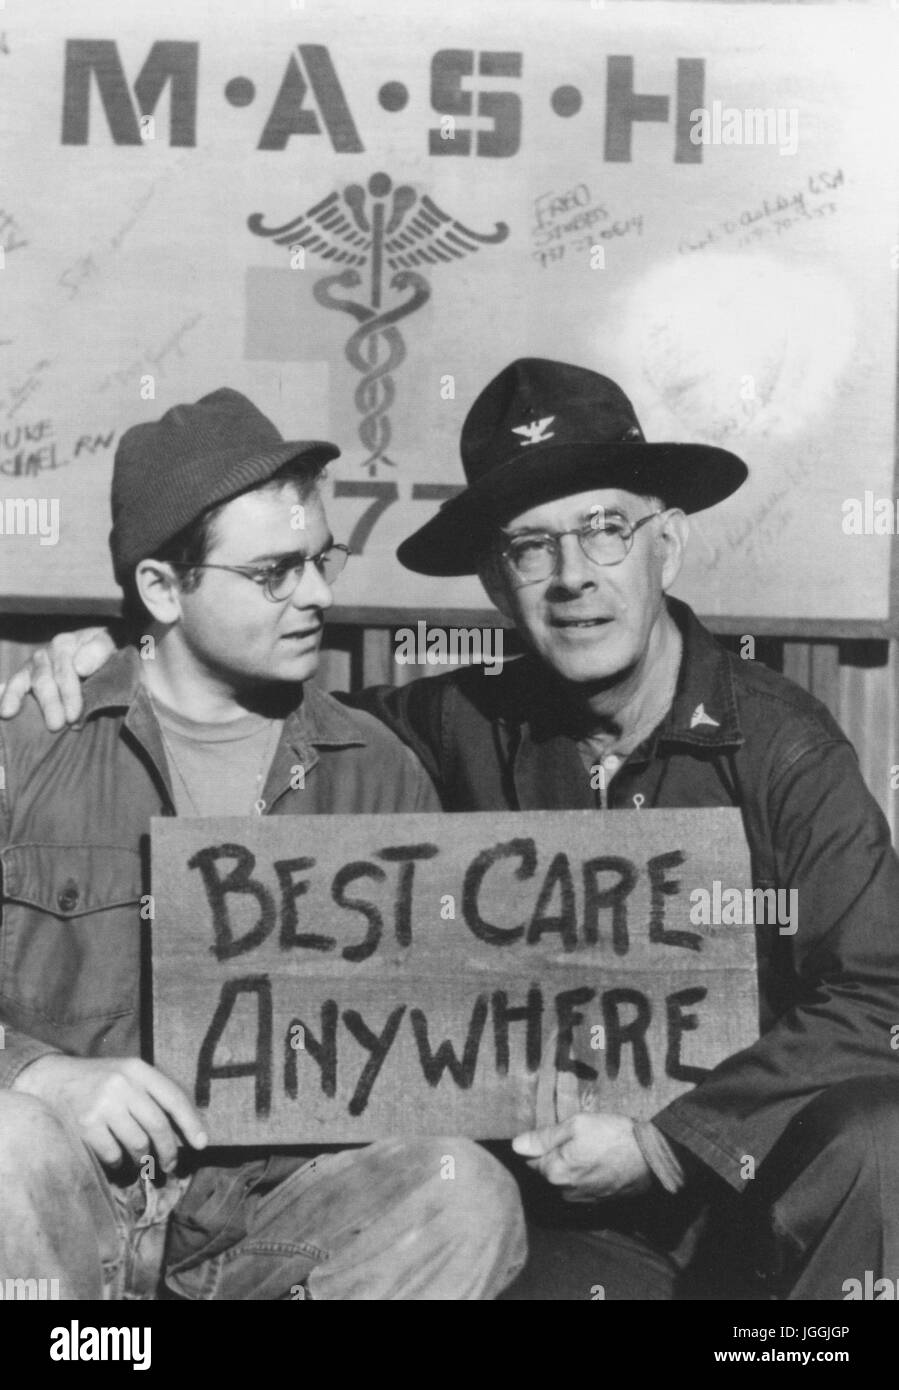 M*A*S*H CBS TV series 1972-1983 with Gary Burghoff as Radar and Harry Morgan as Sherman Potter - Stock Image